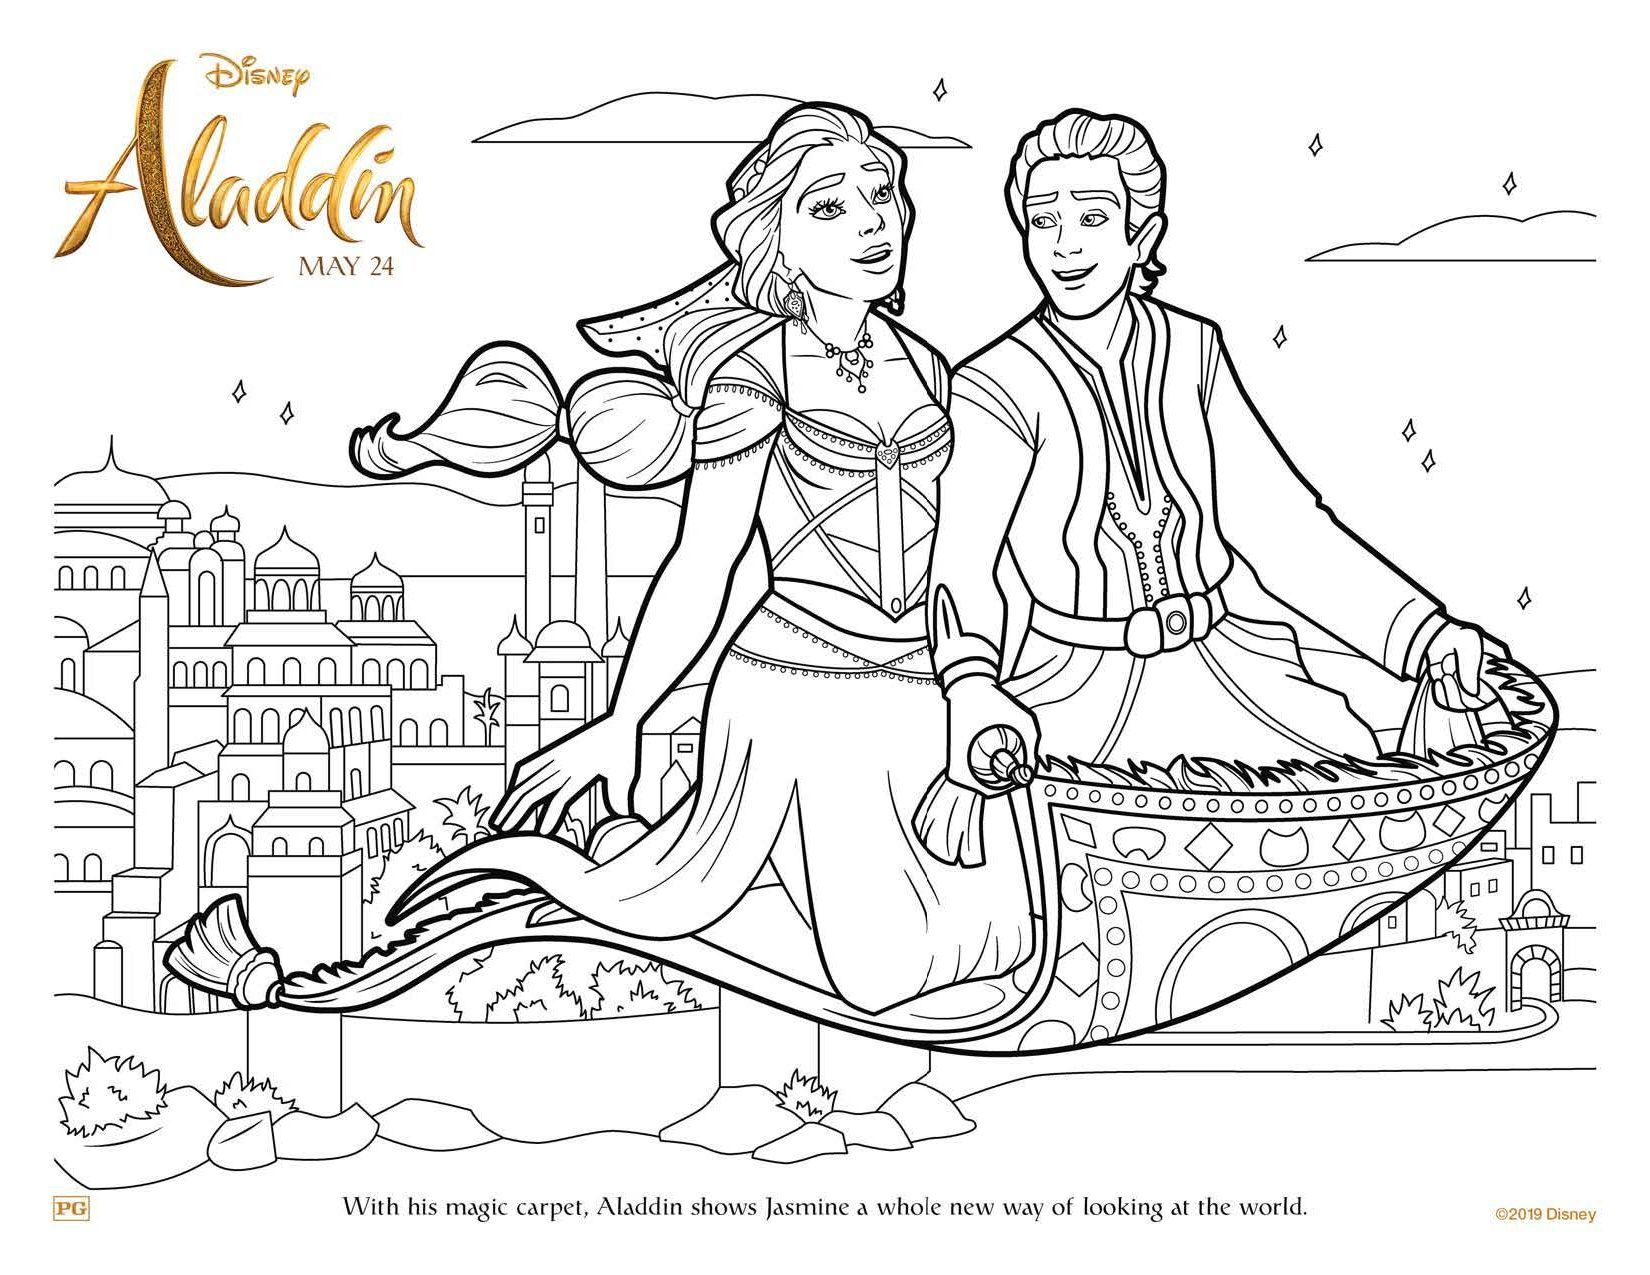 Aladdin Free Coloring Sheets To Print From Home From Disney Disney Princess Coloring Pages Coloring Pages Free Disney Coloring Pages